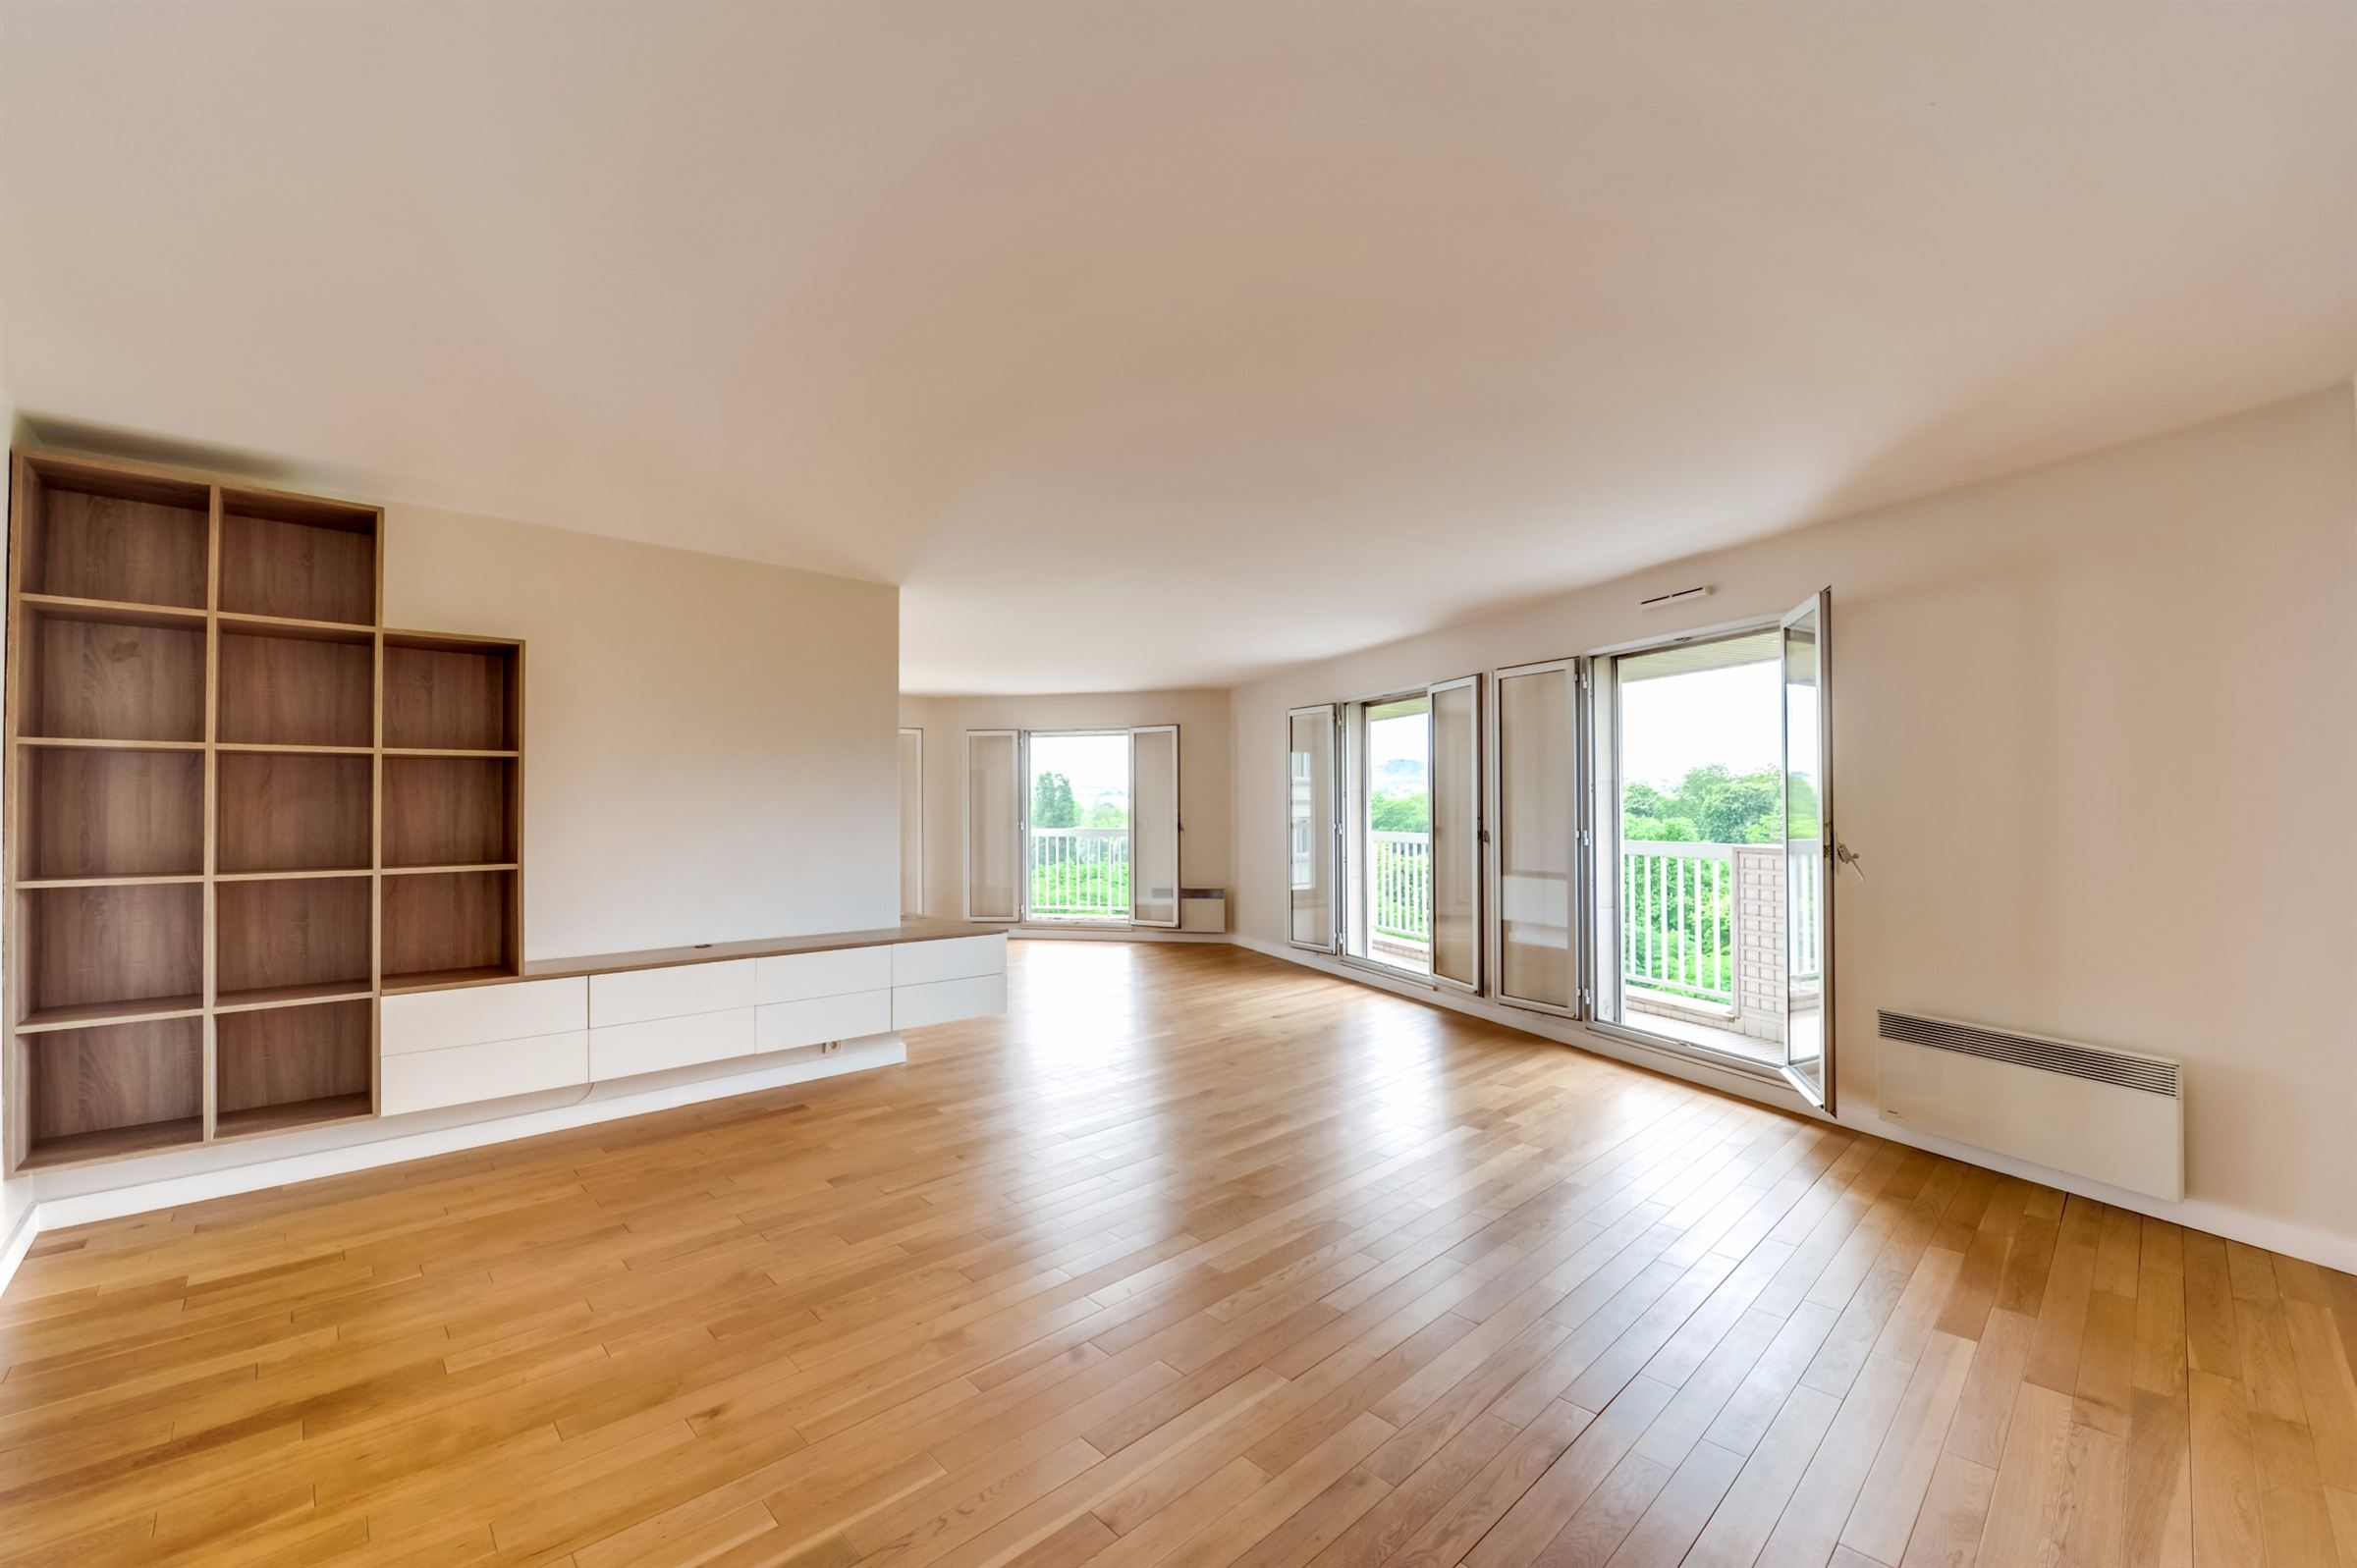 sales property at A158 sq.m apartment for sale, Neuilly - Saint James, 3 bedrooms